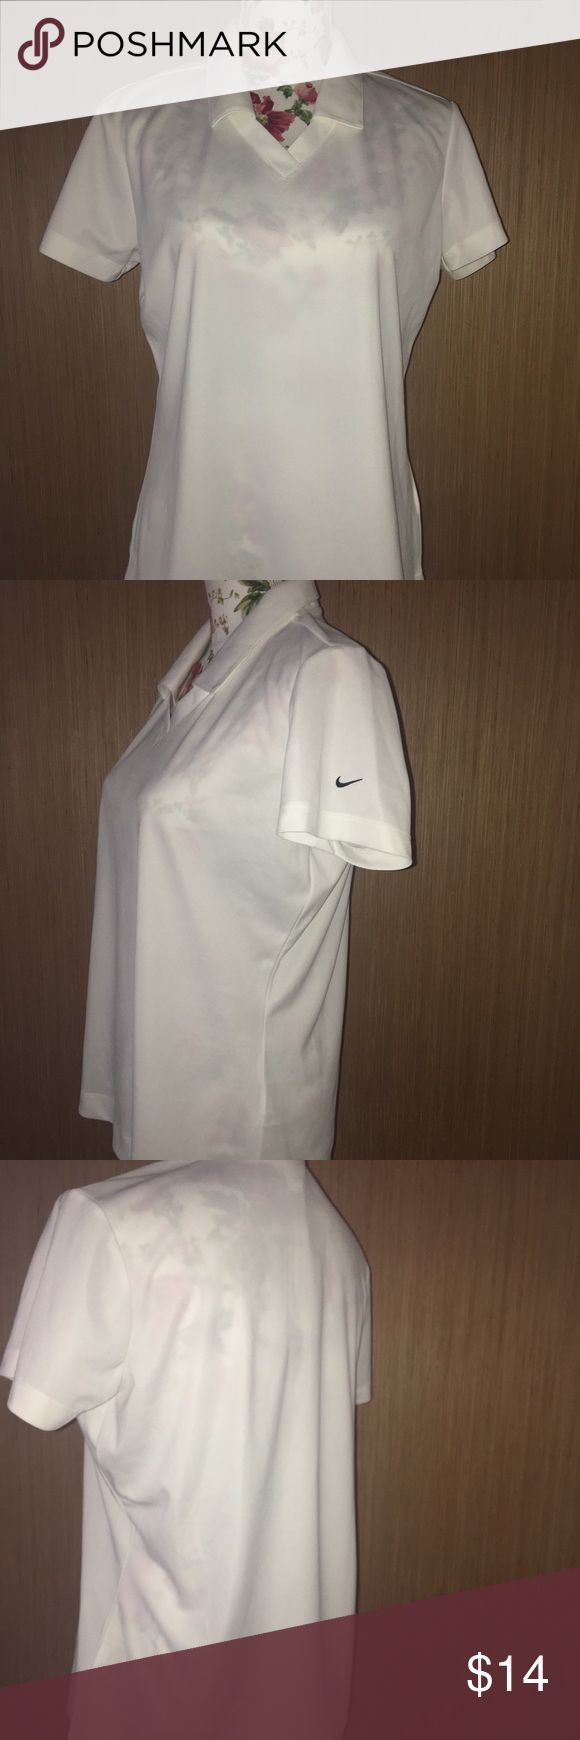 """Nike Golf Womens Dri-fit Polo Ladies Shirt White M Nike golf polo shirt Women's size M Pull over  White  Dri-fit  Shorts sleeve  New with tags  Measurements are approximate:  Length – 25"""" Bust – 20"""" Nike Other"""